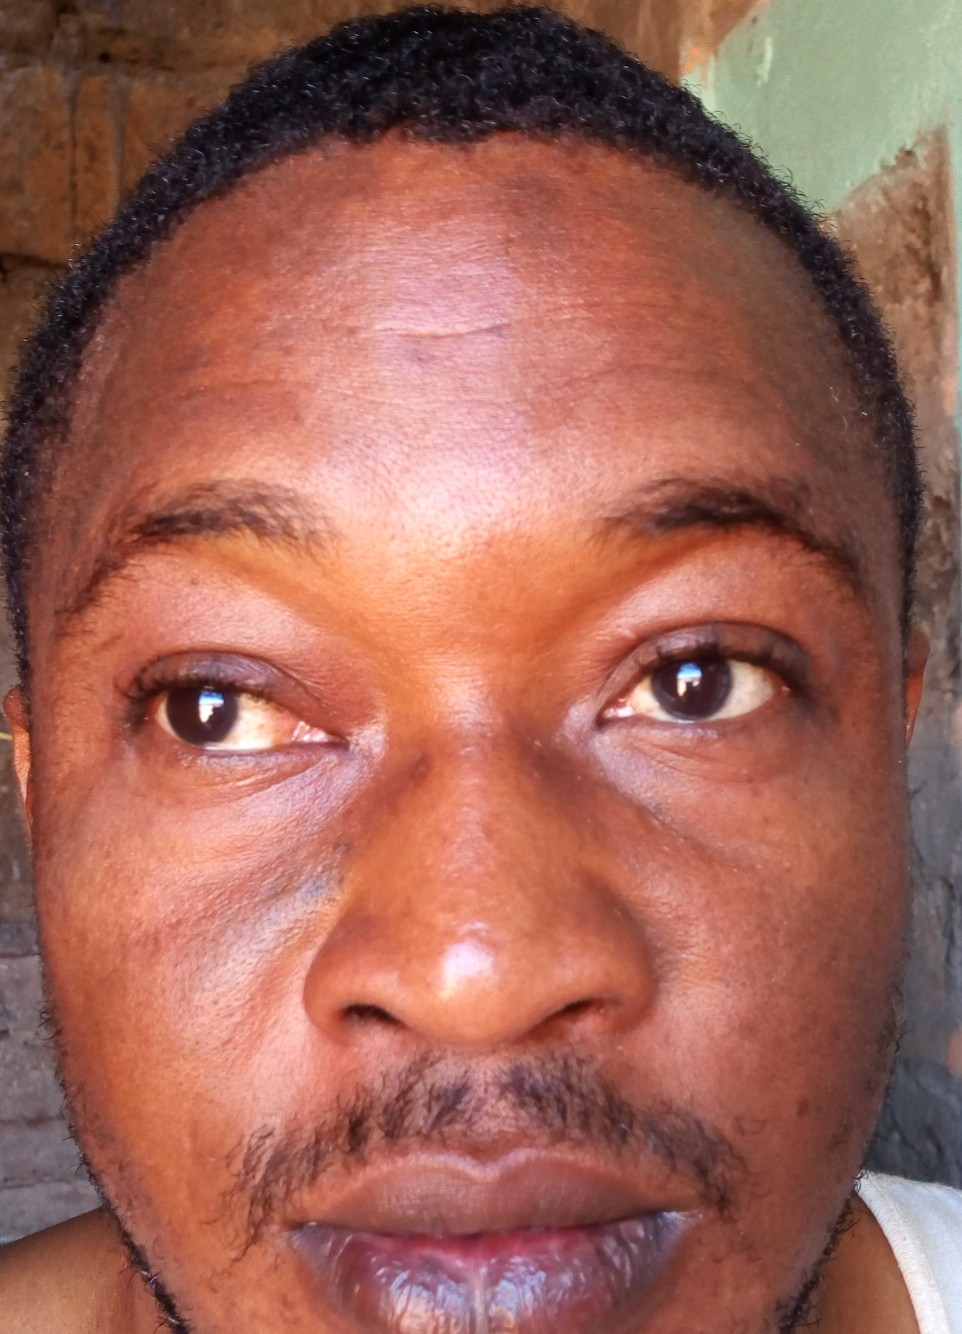 Profile picture of Stanley Obinna Egejuru at Vulpith